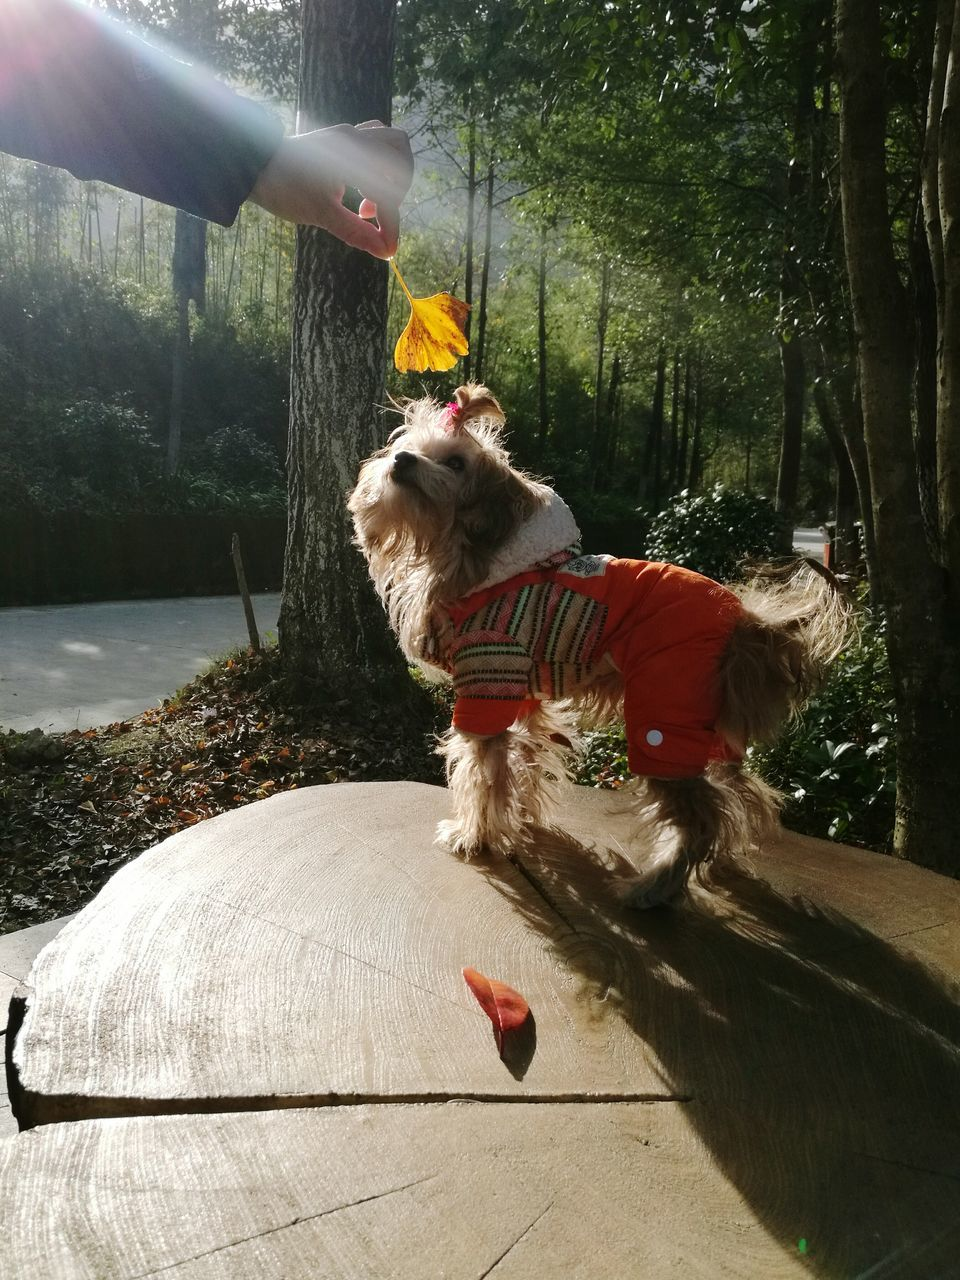 dog, pets, animal themes, one animal, domestic animals, tree, mammal, day, outdoors, full length, real people, water, motion, one person, nature, people